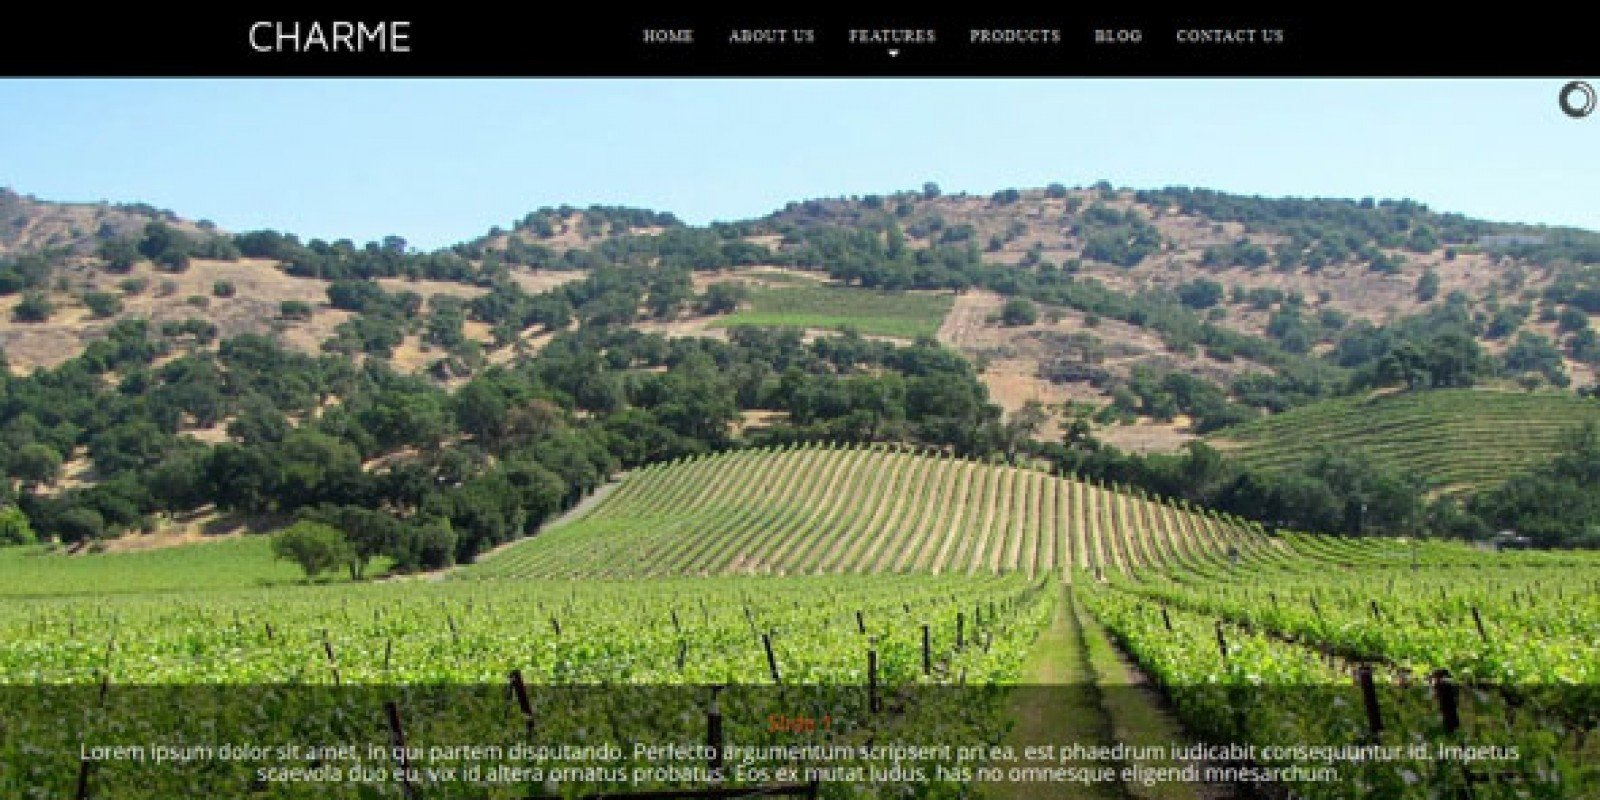 Charme - Winery And Wines WordPress Theme